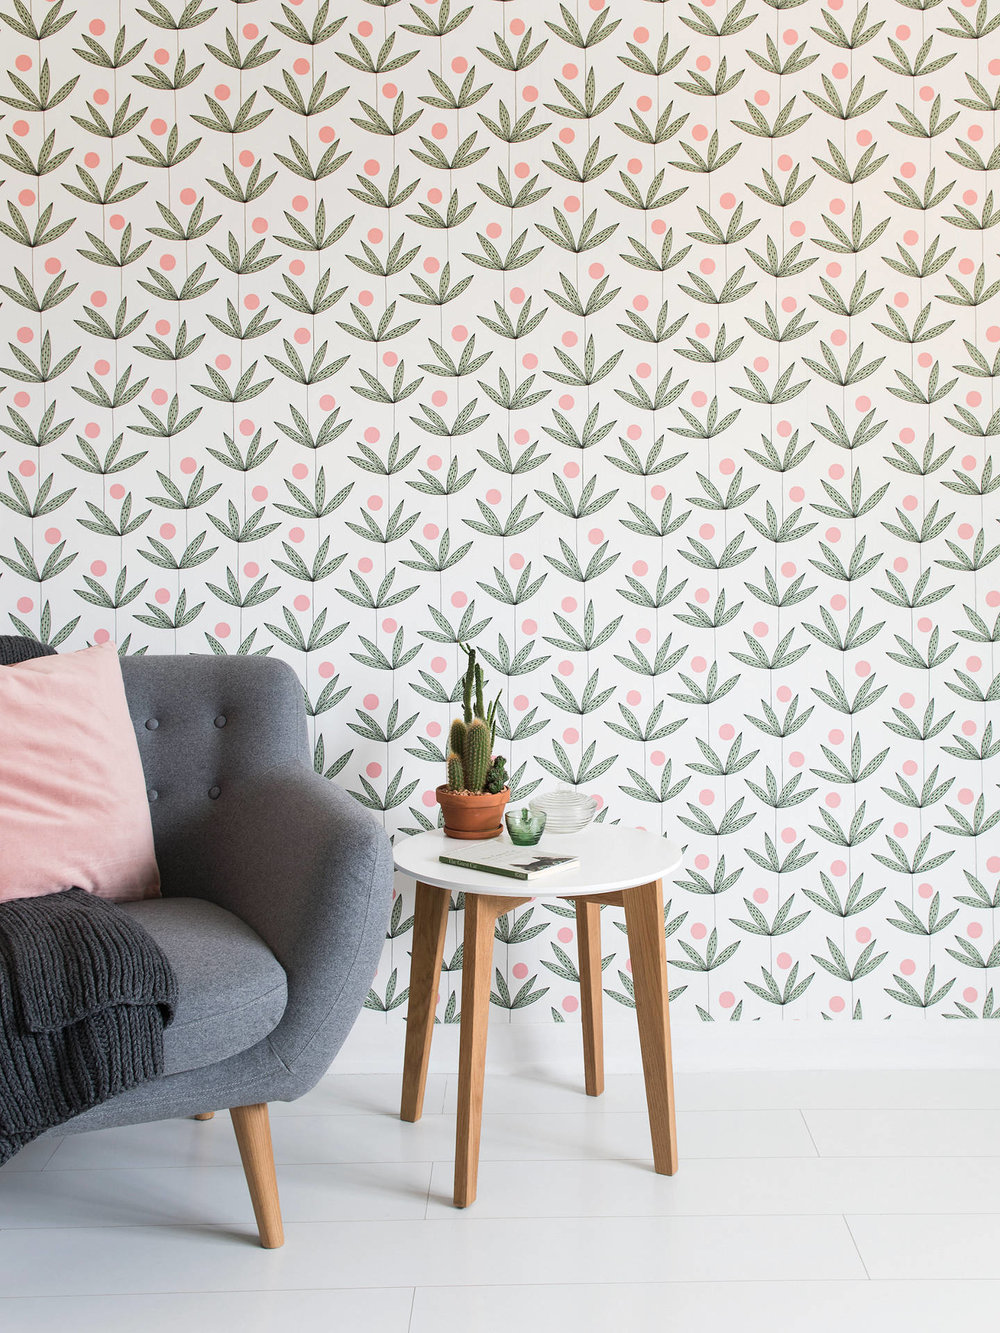 Palm Tree from MissPrint - A delicate, illustrative interpretation of the classic palm print, the Palm Tree wallpaper from MissPrint keeps things beautifully simple. With palm trees growing the length of the wallpaper, detailed lines are paired with pops of block colour to create harmony and introduce a modern take on the botanical trend. £69.00Image: MissPrint